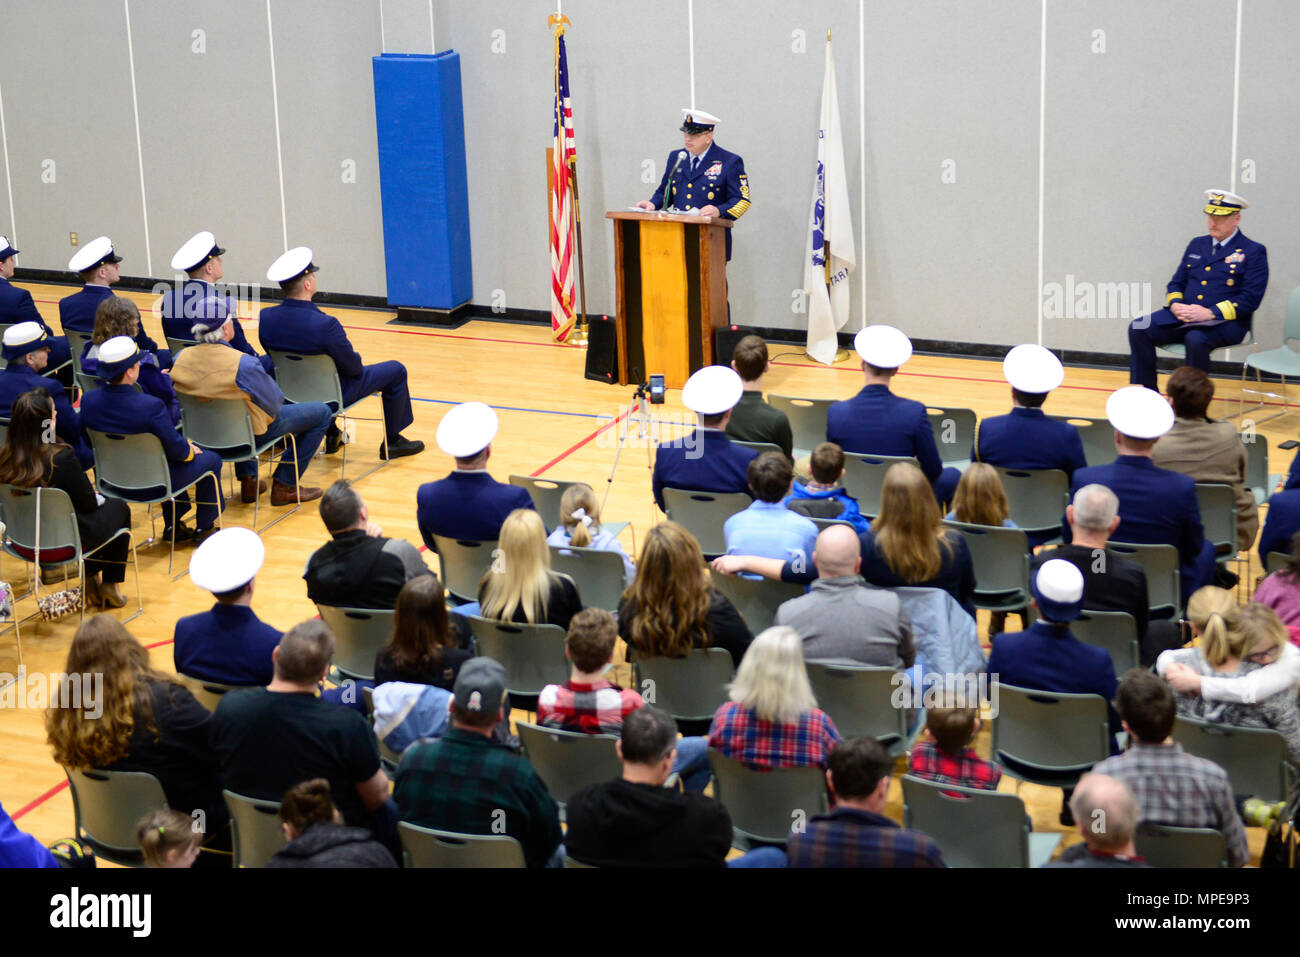 Master Chief Petty Officer of the Coast Guard Steven W. Cantrell delivers his remarks during a remembrance ceremony at Coast Guard Station Quillayute River in La Push, Wash., Sunday, Feb 12, 2017. The remembrance ceremony honored the 20-year anniversary of the loss of three Coast Guardsmen aboard Coast Guard Motor Lifeboat 44363. U.S. Coast Guard photo by Chief Petty Officer Nick Ameen - Stock Image